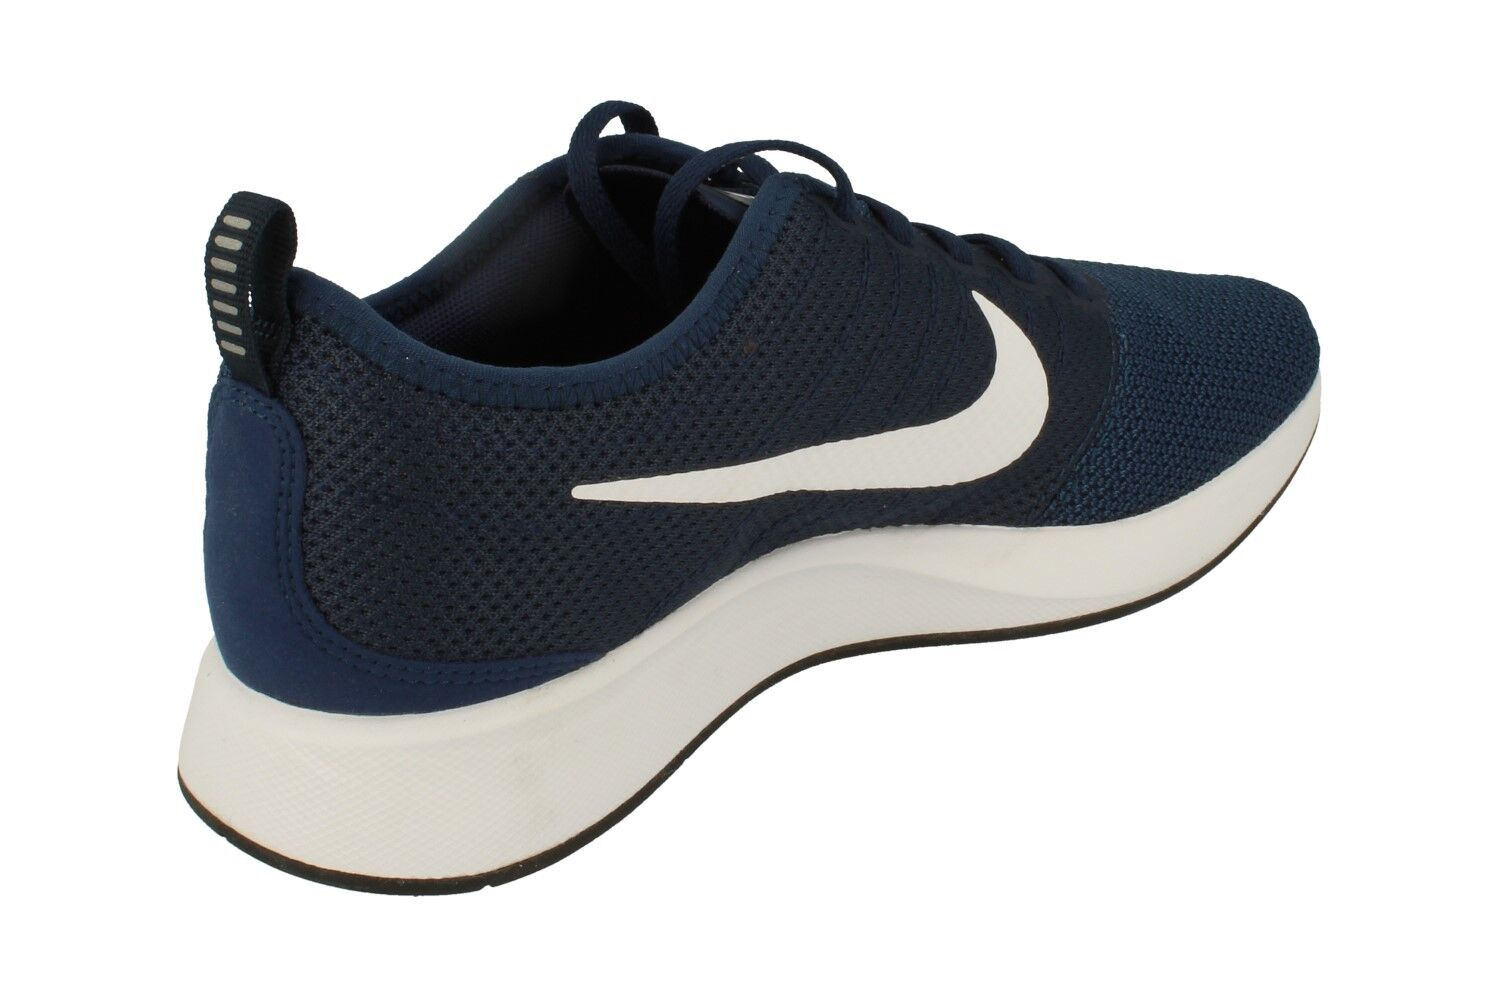 huge discount ab41b 781b0 ... Nike Dualtone Racer Mens Running Trainers 918227 Sneakers Shoes Shoes  Shoes 400 acd305 ...